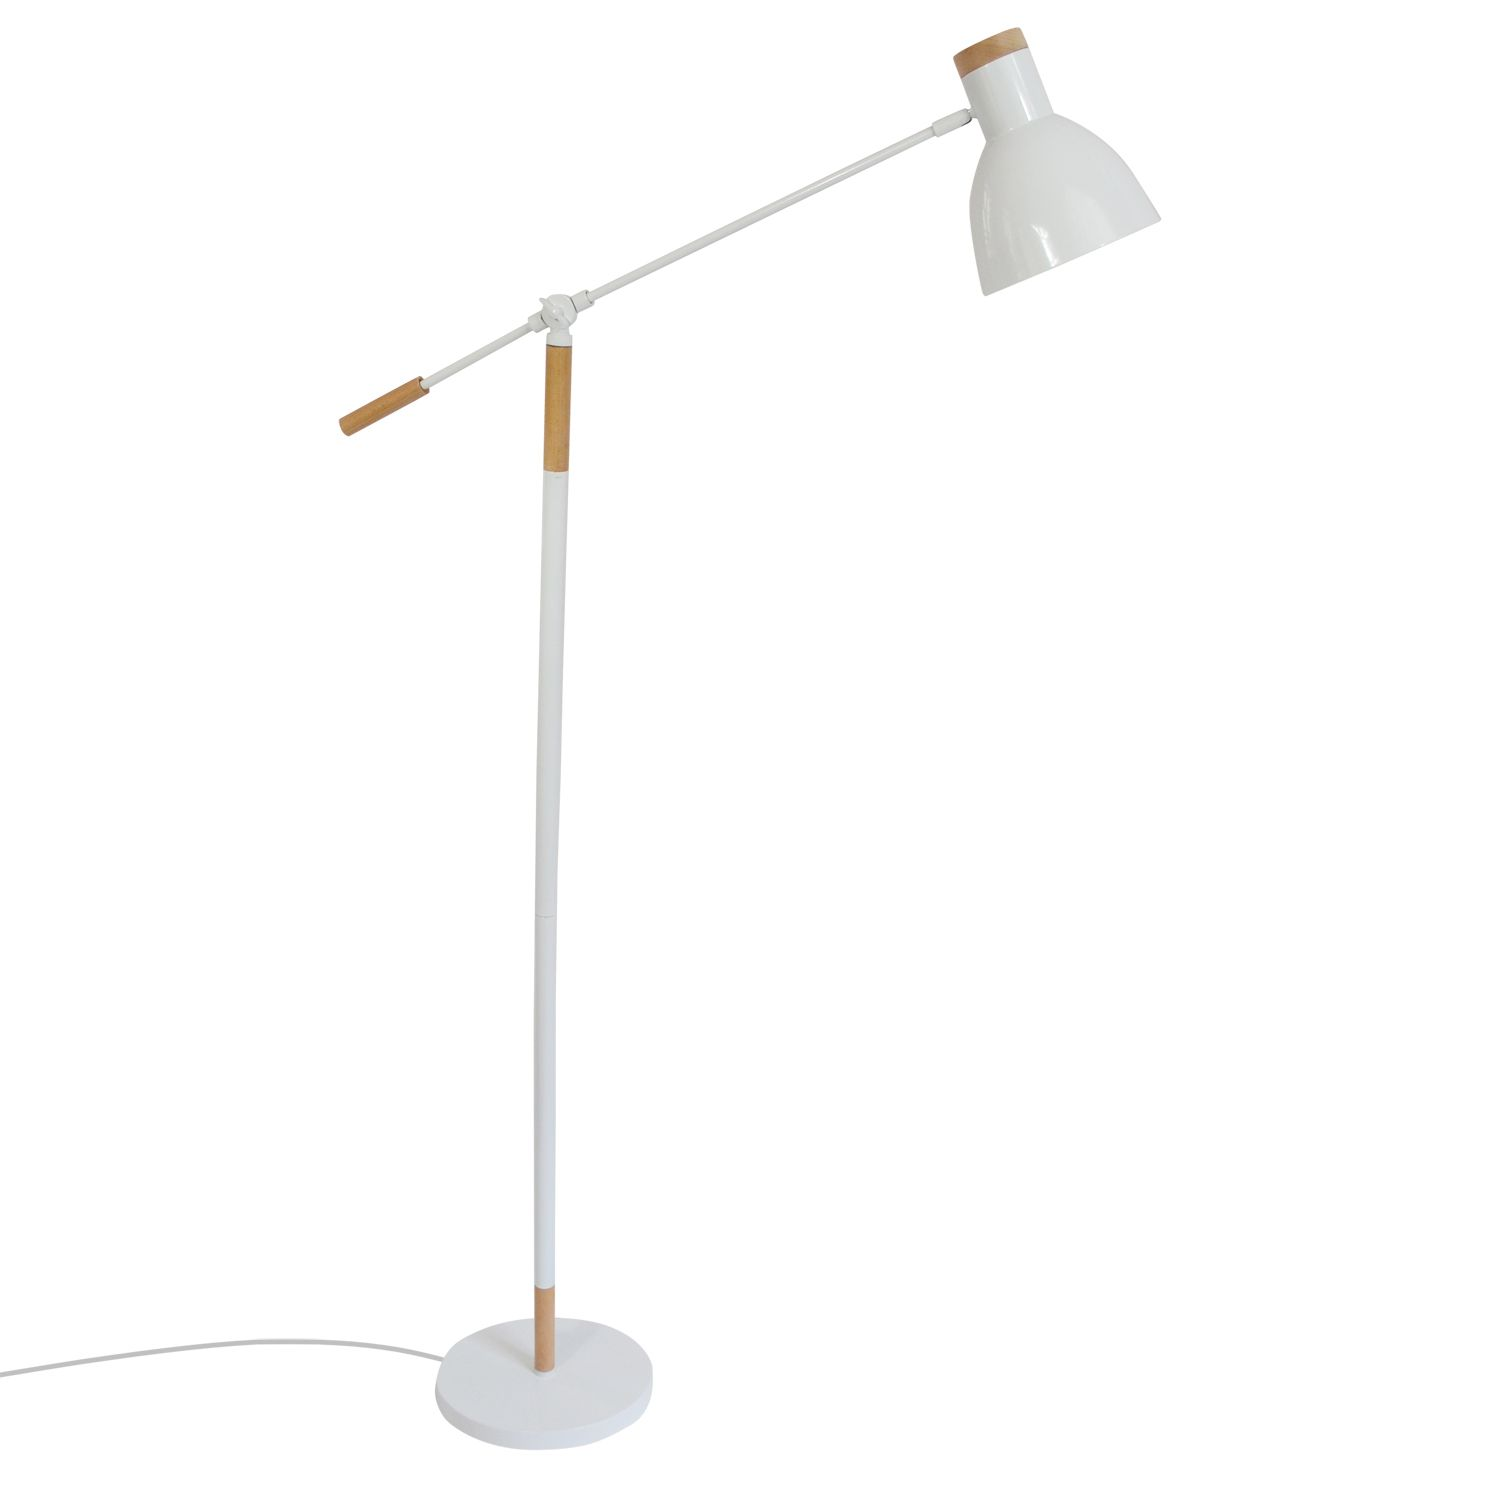 COPENHAGUE - Liseuse Blanc | Lampadaire Marbella Lighting designé par Marbella Lighting | LightOnline